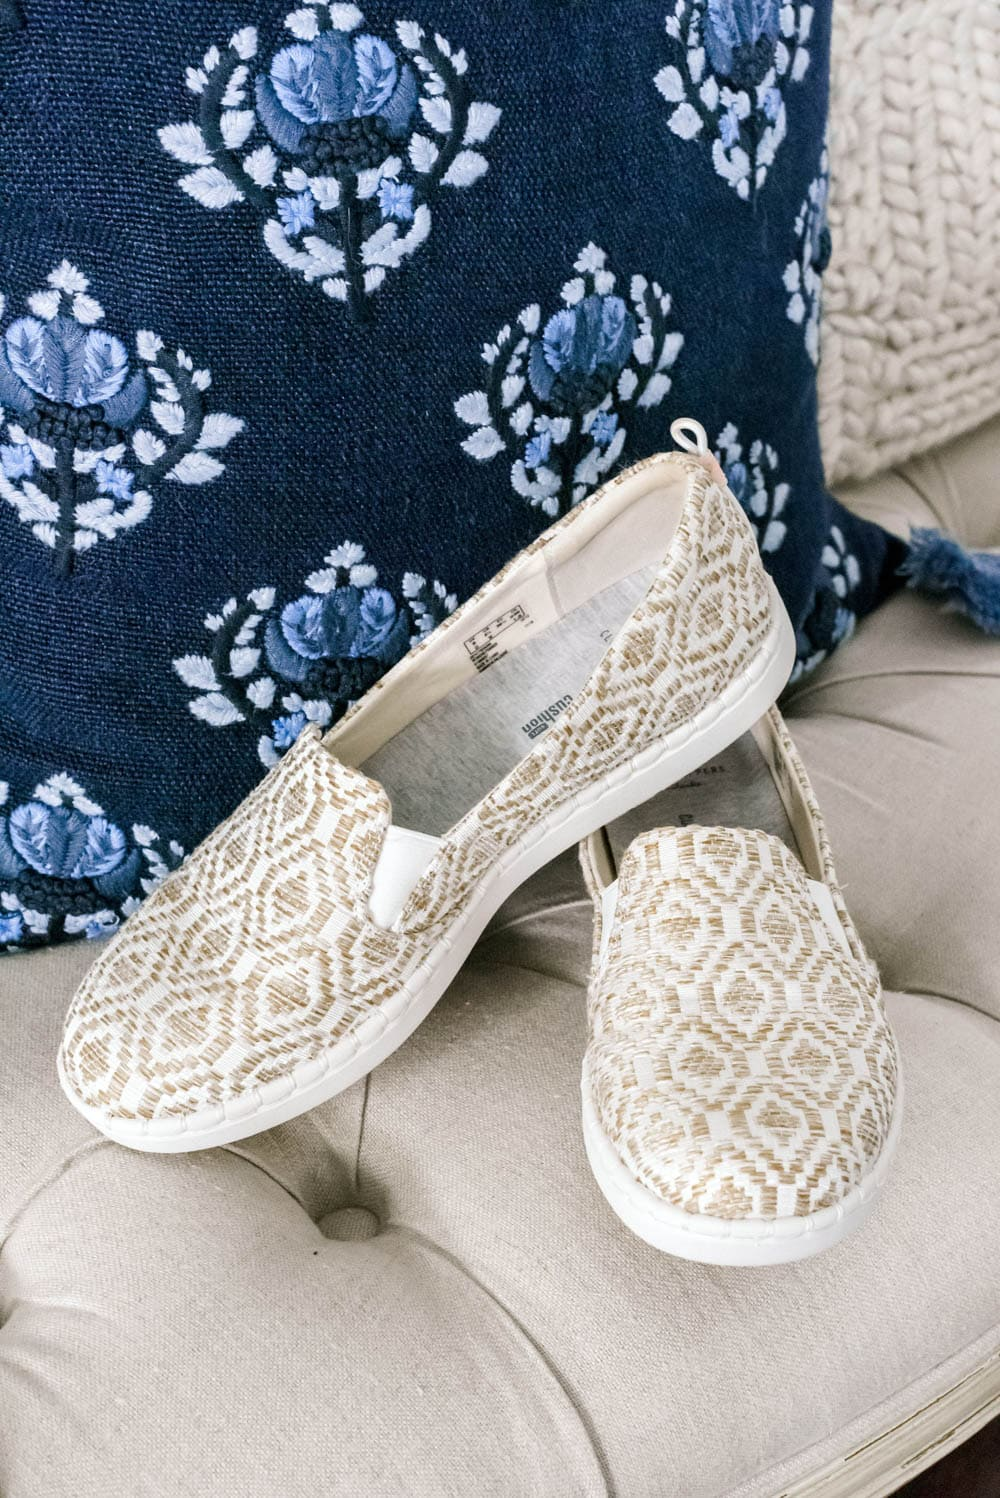 Bouncing into spring with Zappos and Clarks with comfort and style! #ad #ClarksforLife #Comfort #Comfortinyoursoul #ZapposStyle